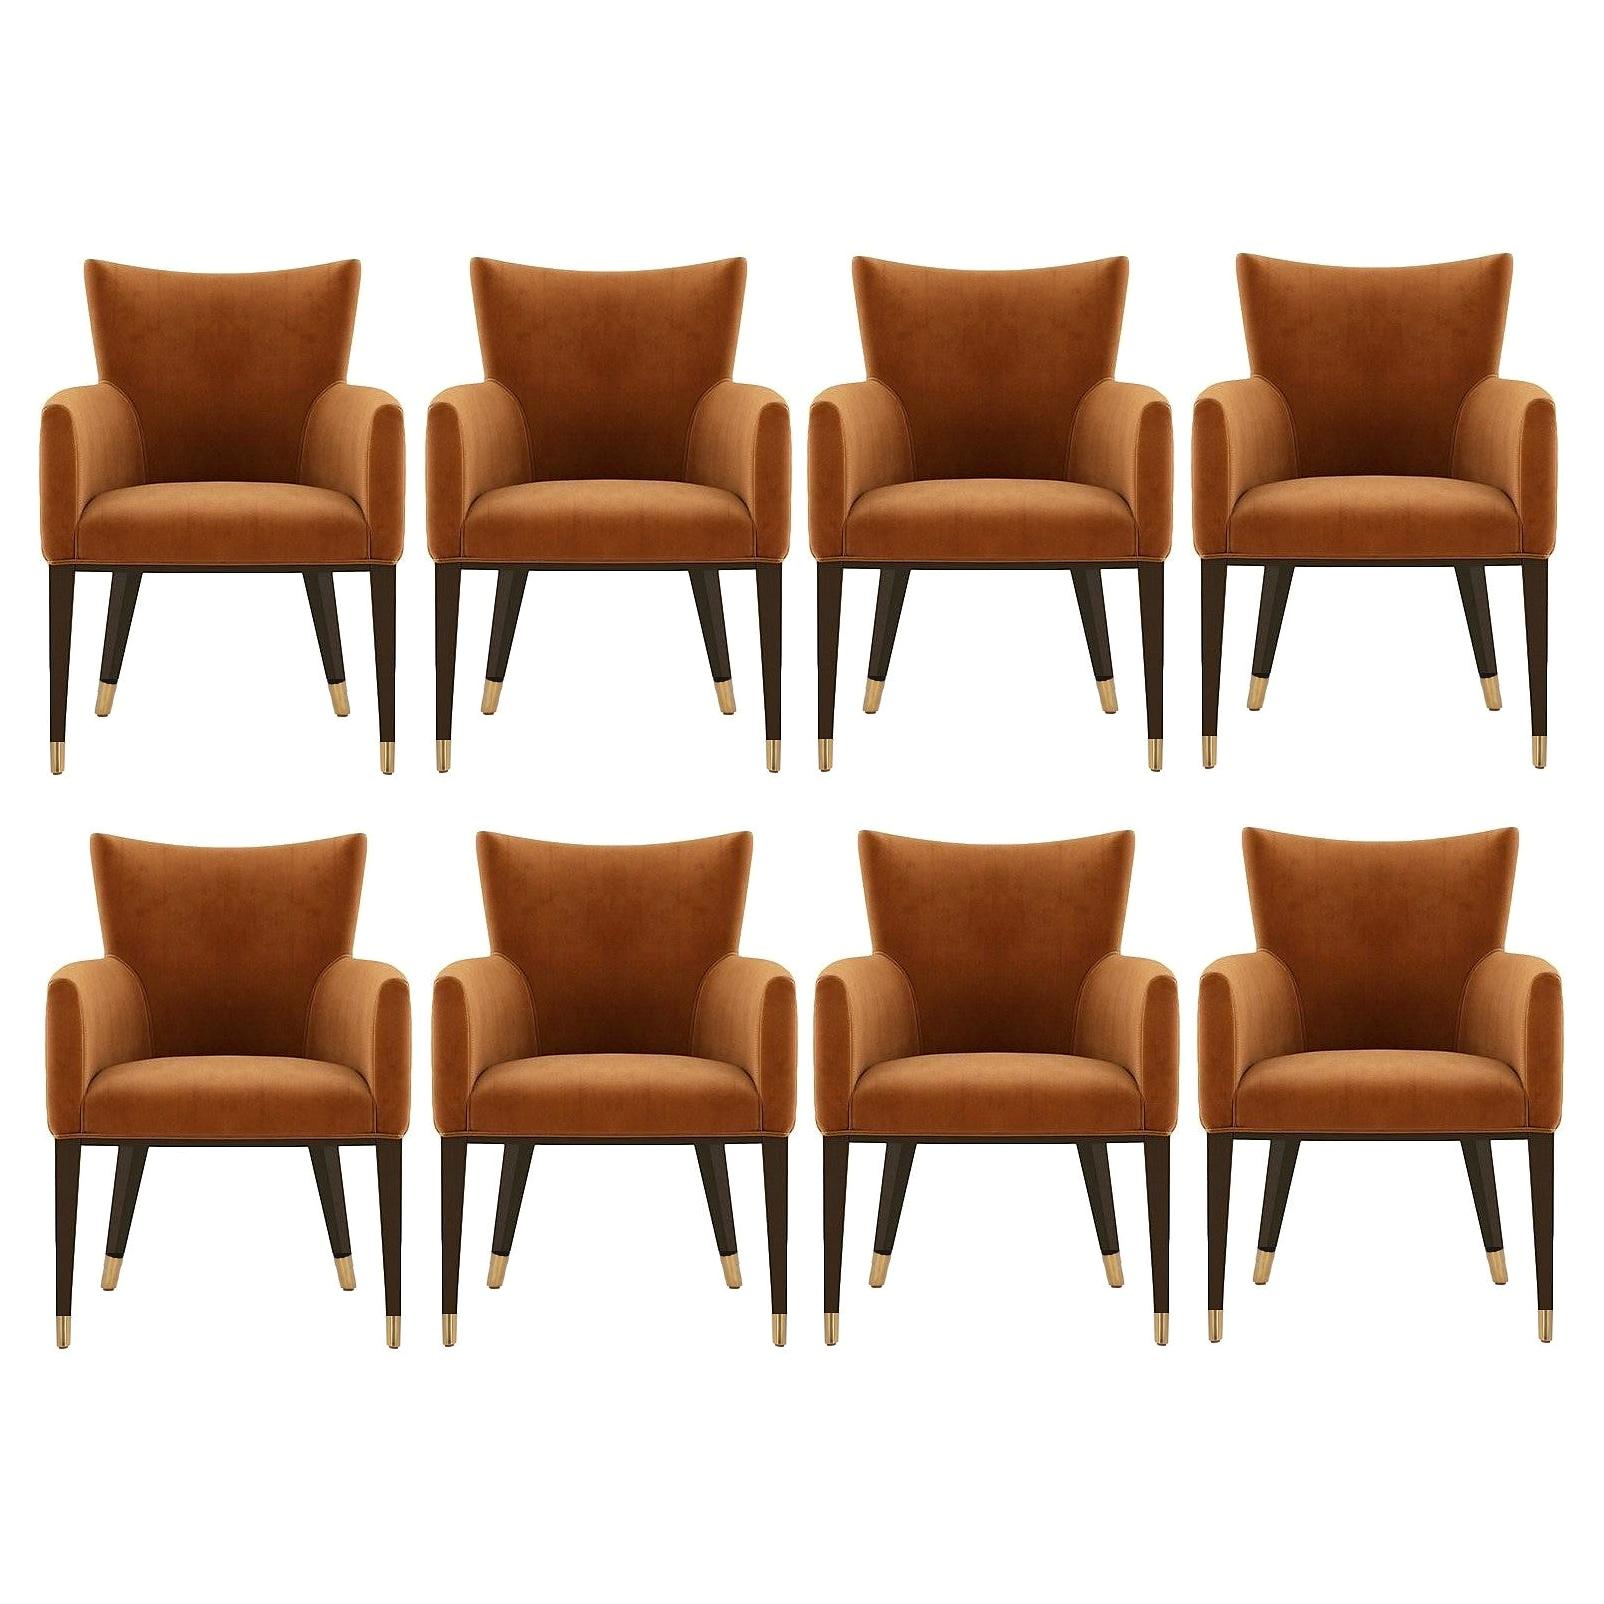 Contemporary Elegant Dining Chairs, Set of 8